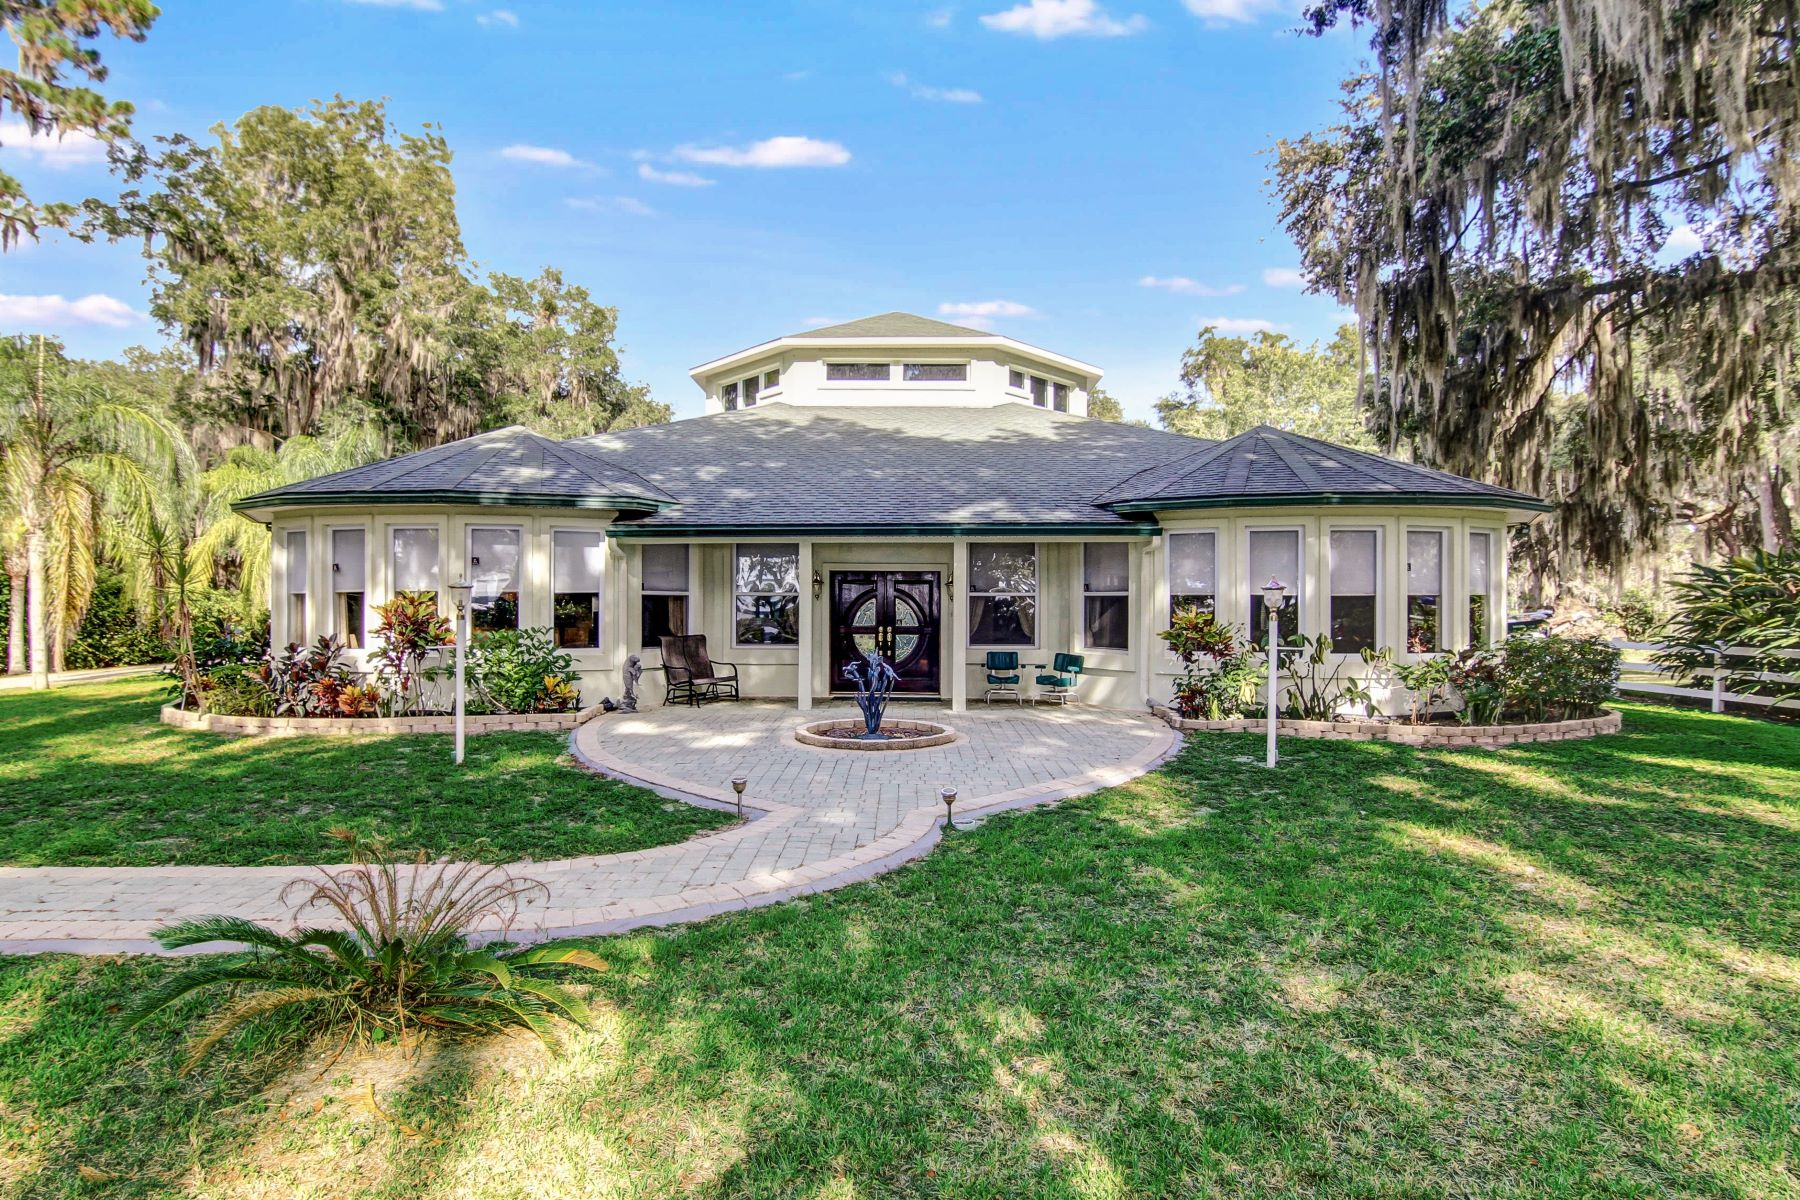 Casa Unifamiliar por un Venta en 10536 County Road 13 North St. Augustine, Florida, 32092 Estados Unidos